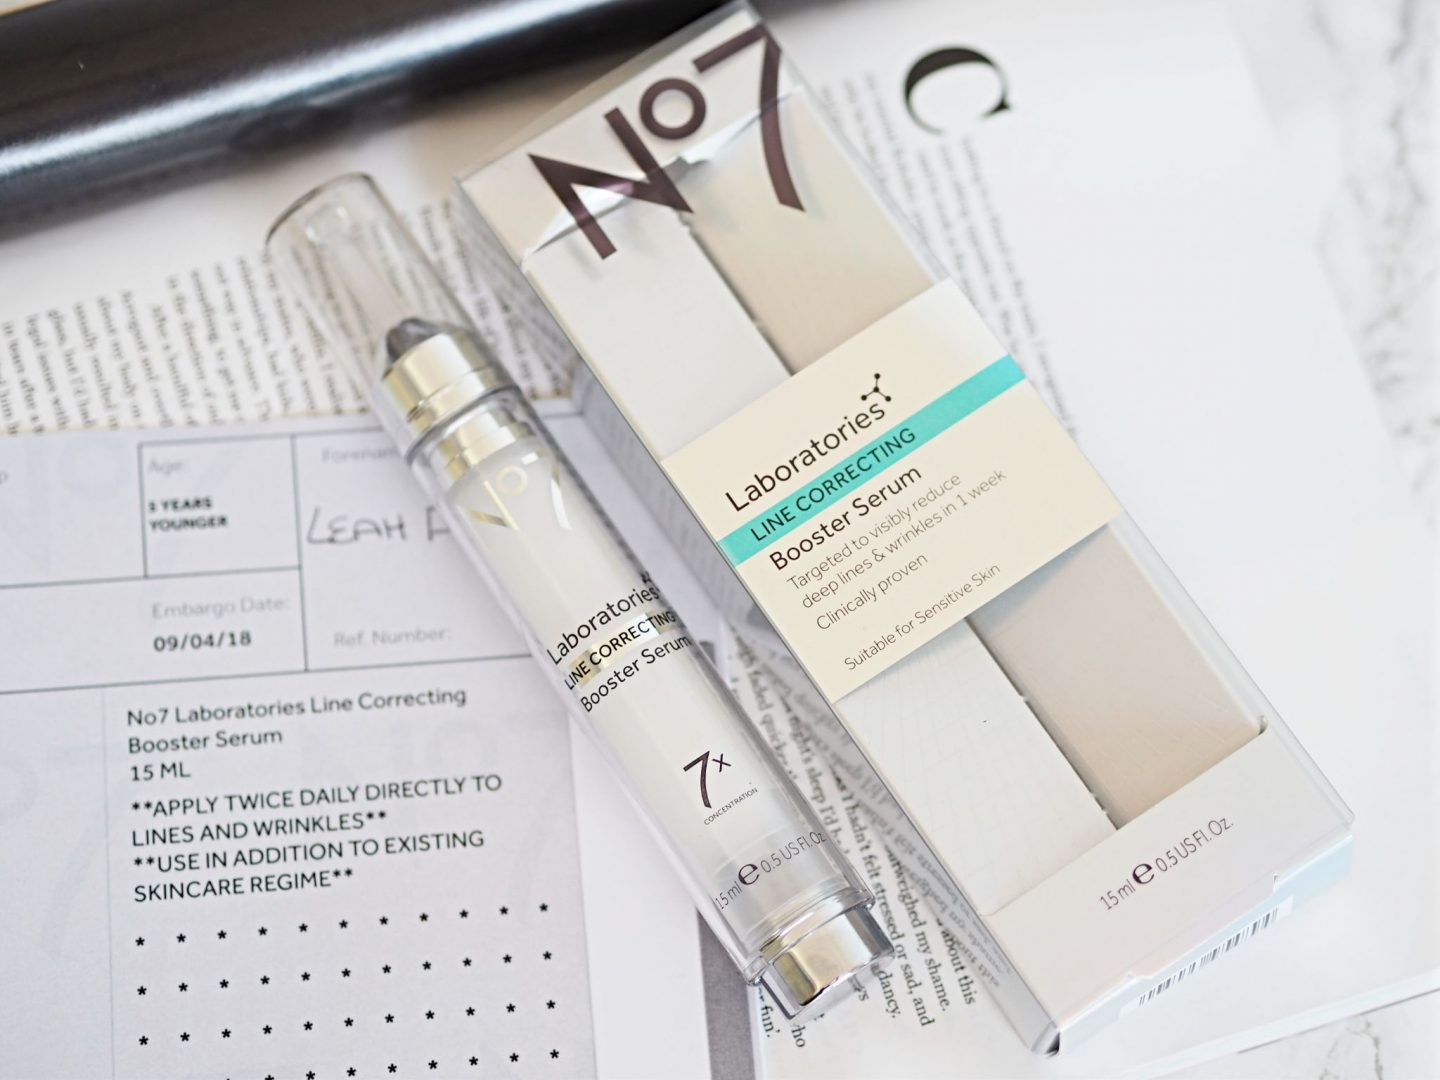 No7 Line Correcting Booster Serum Review